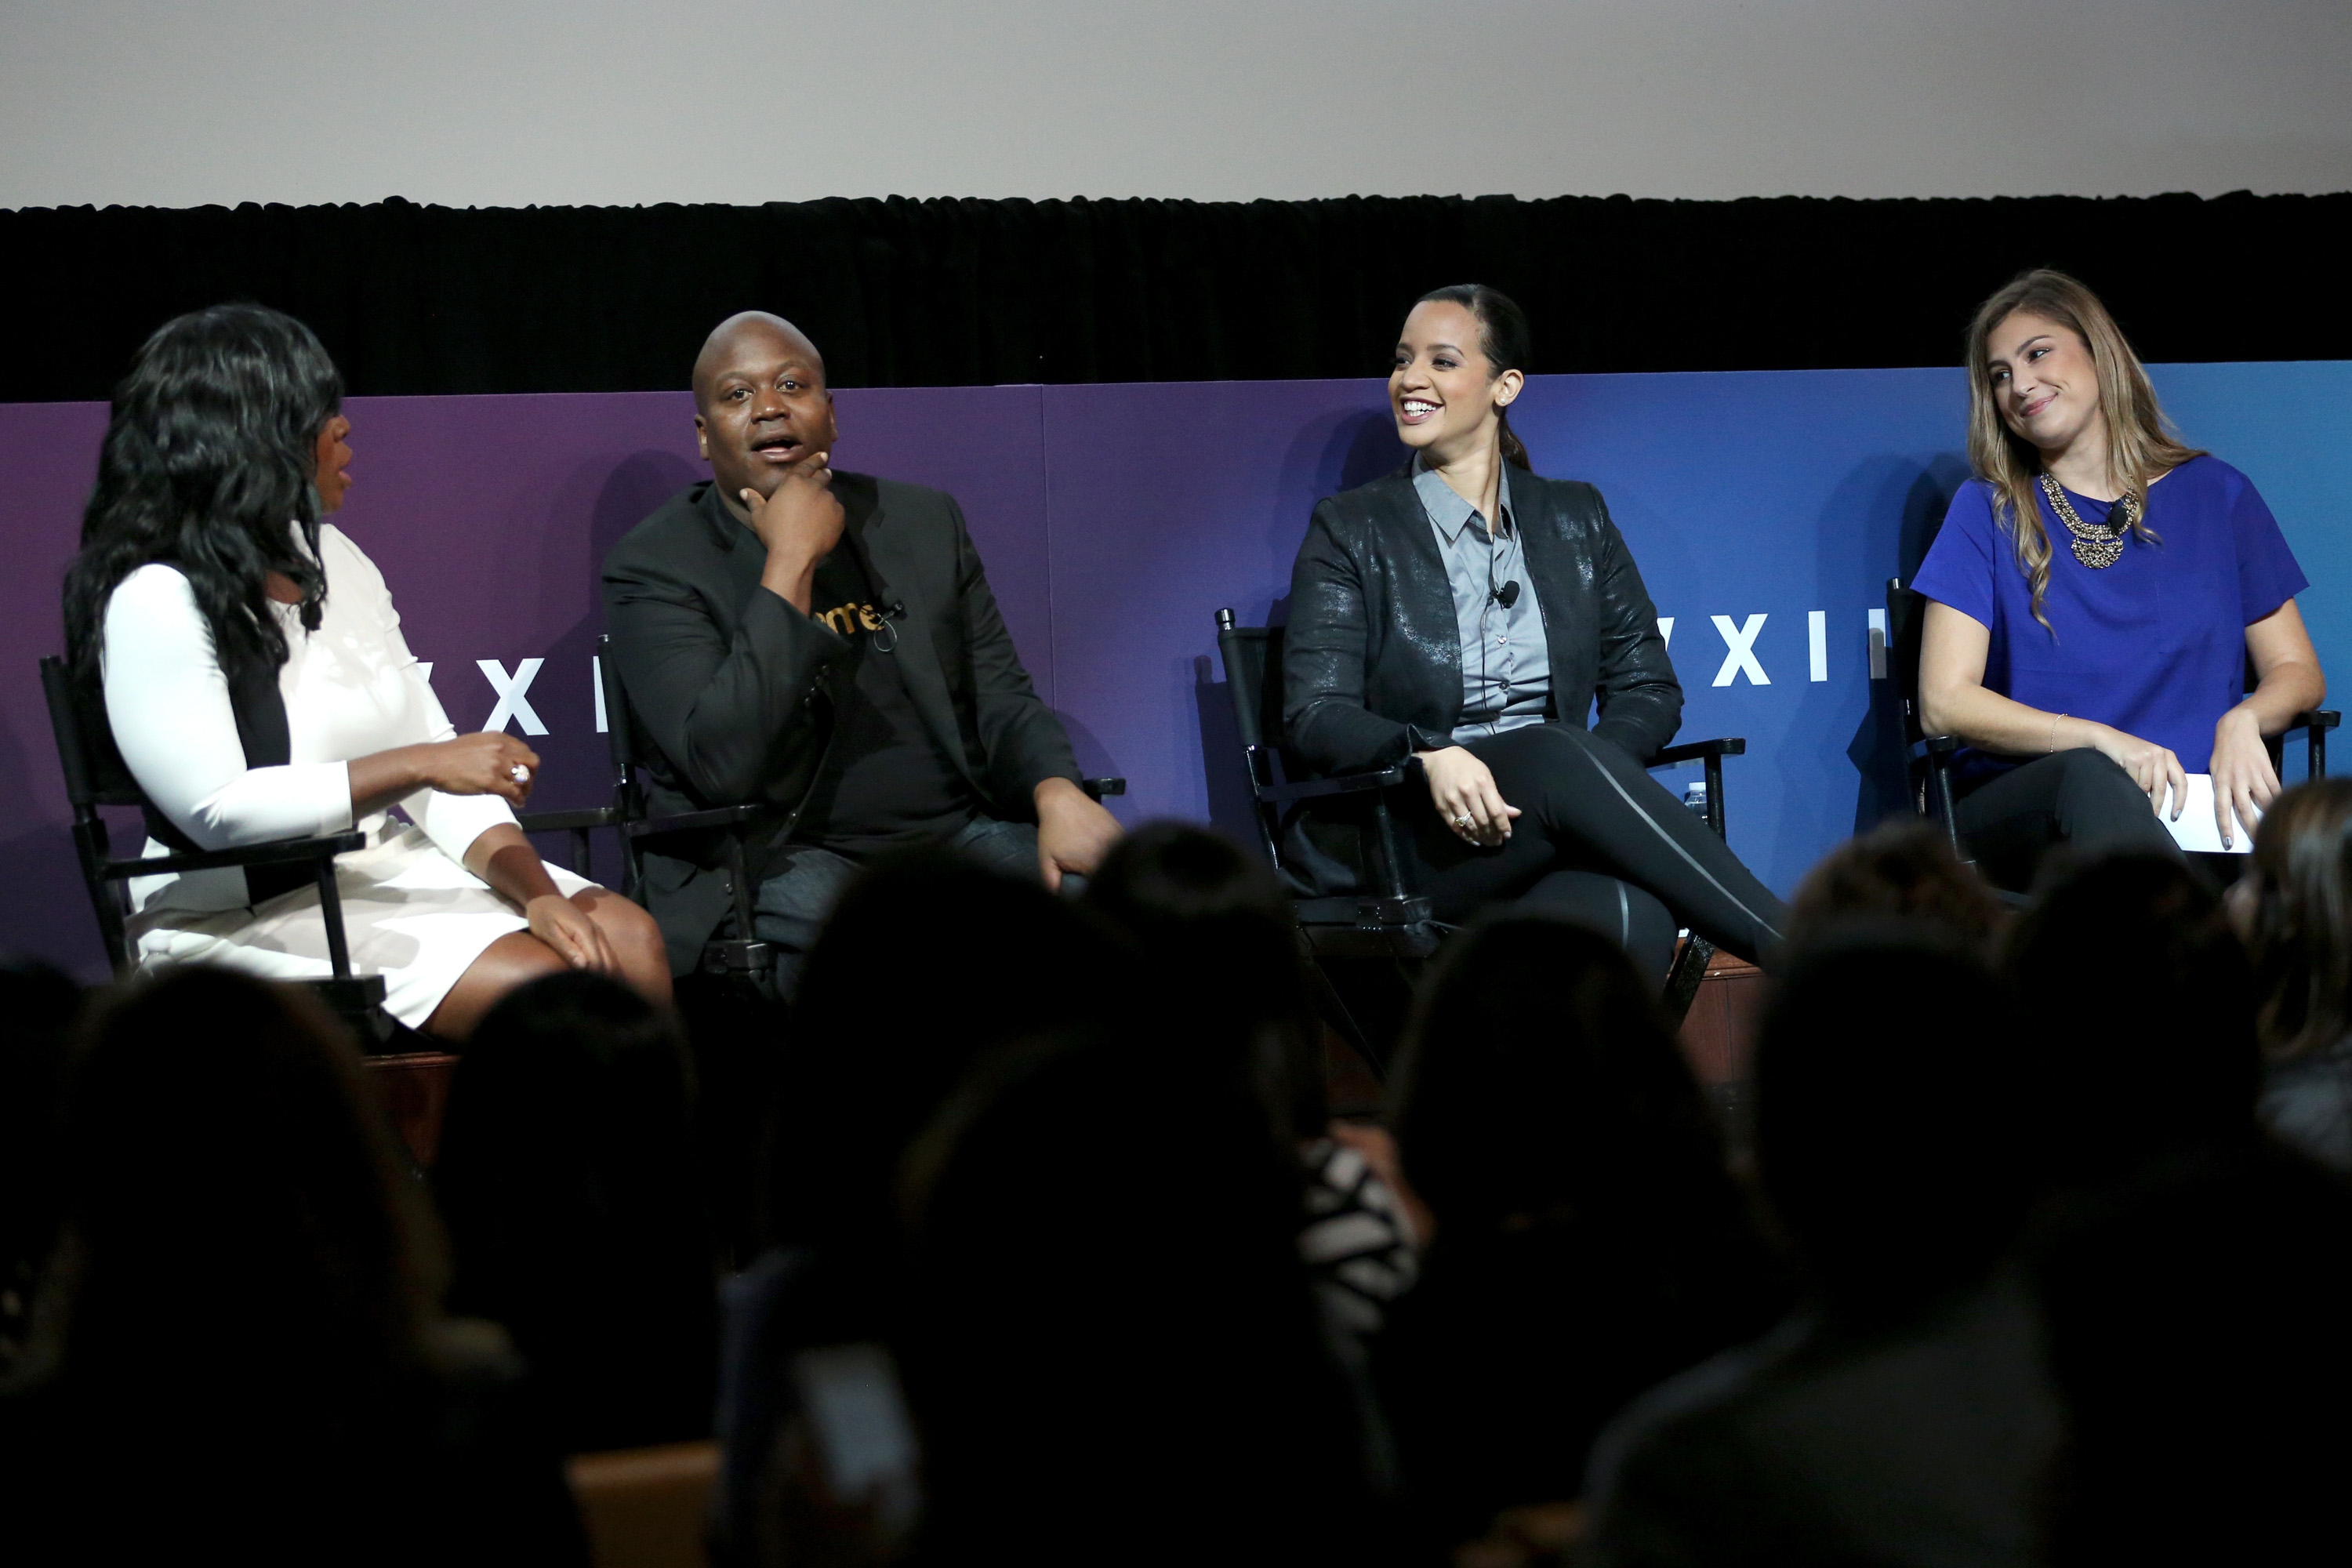 Actors Uzo Aduba, Tituss Burgess and Dascha Polanco speak on a panel moderated by WhoSay Editorial Director Kirstin Benson during Advertising Week 2015 on September 29, 2015 in New York City.